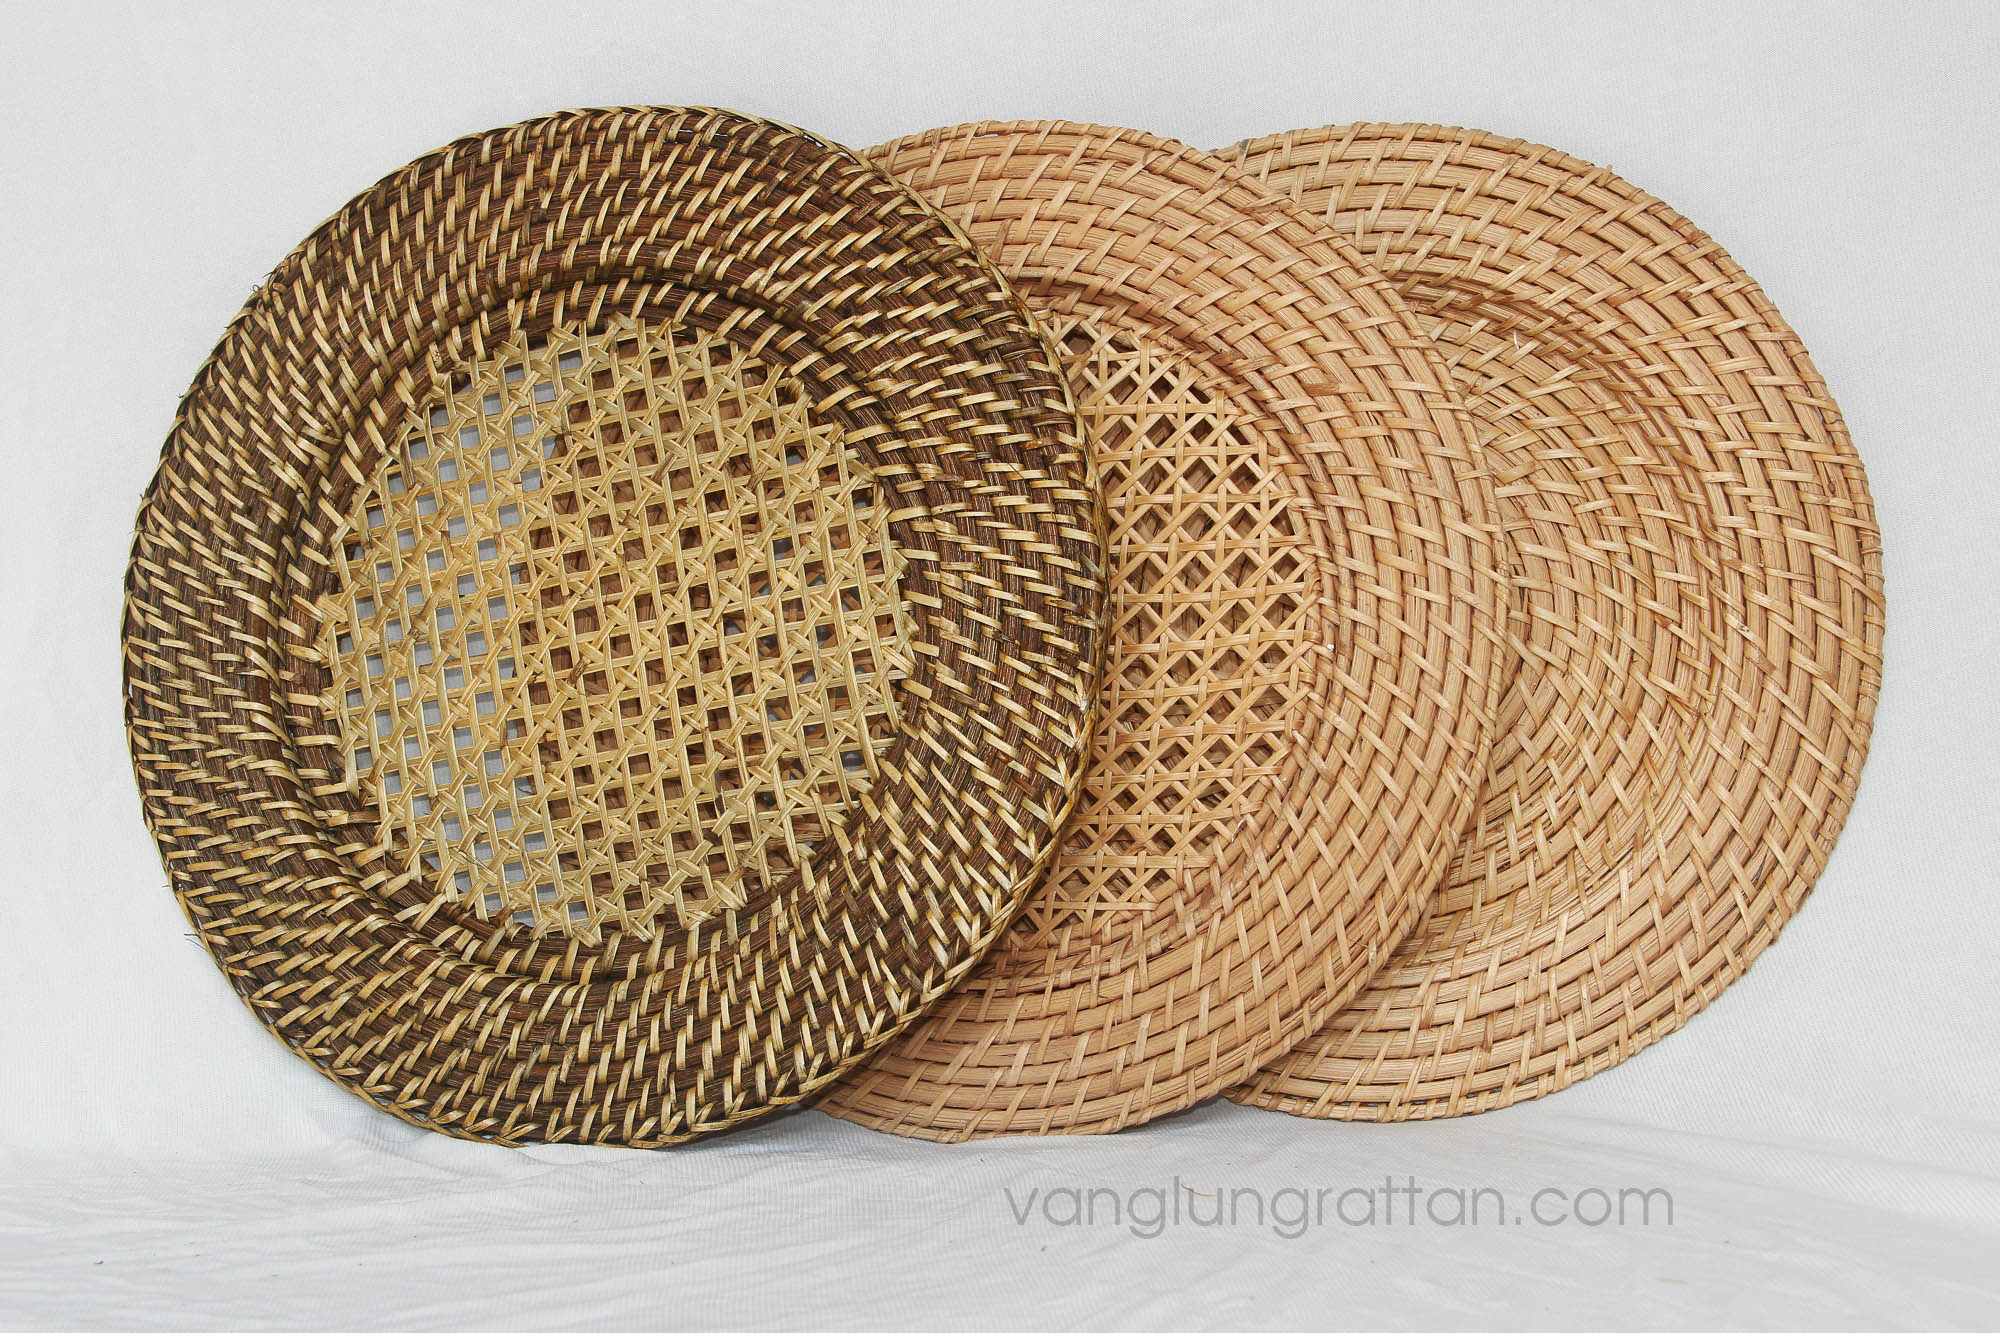 Vang Lung Bamboo Rattan in 2016